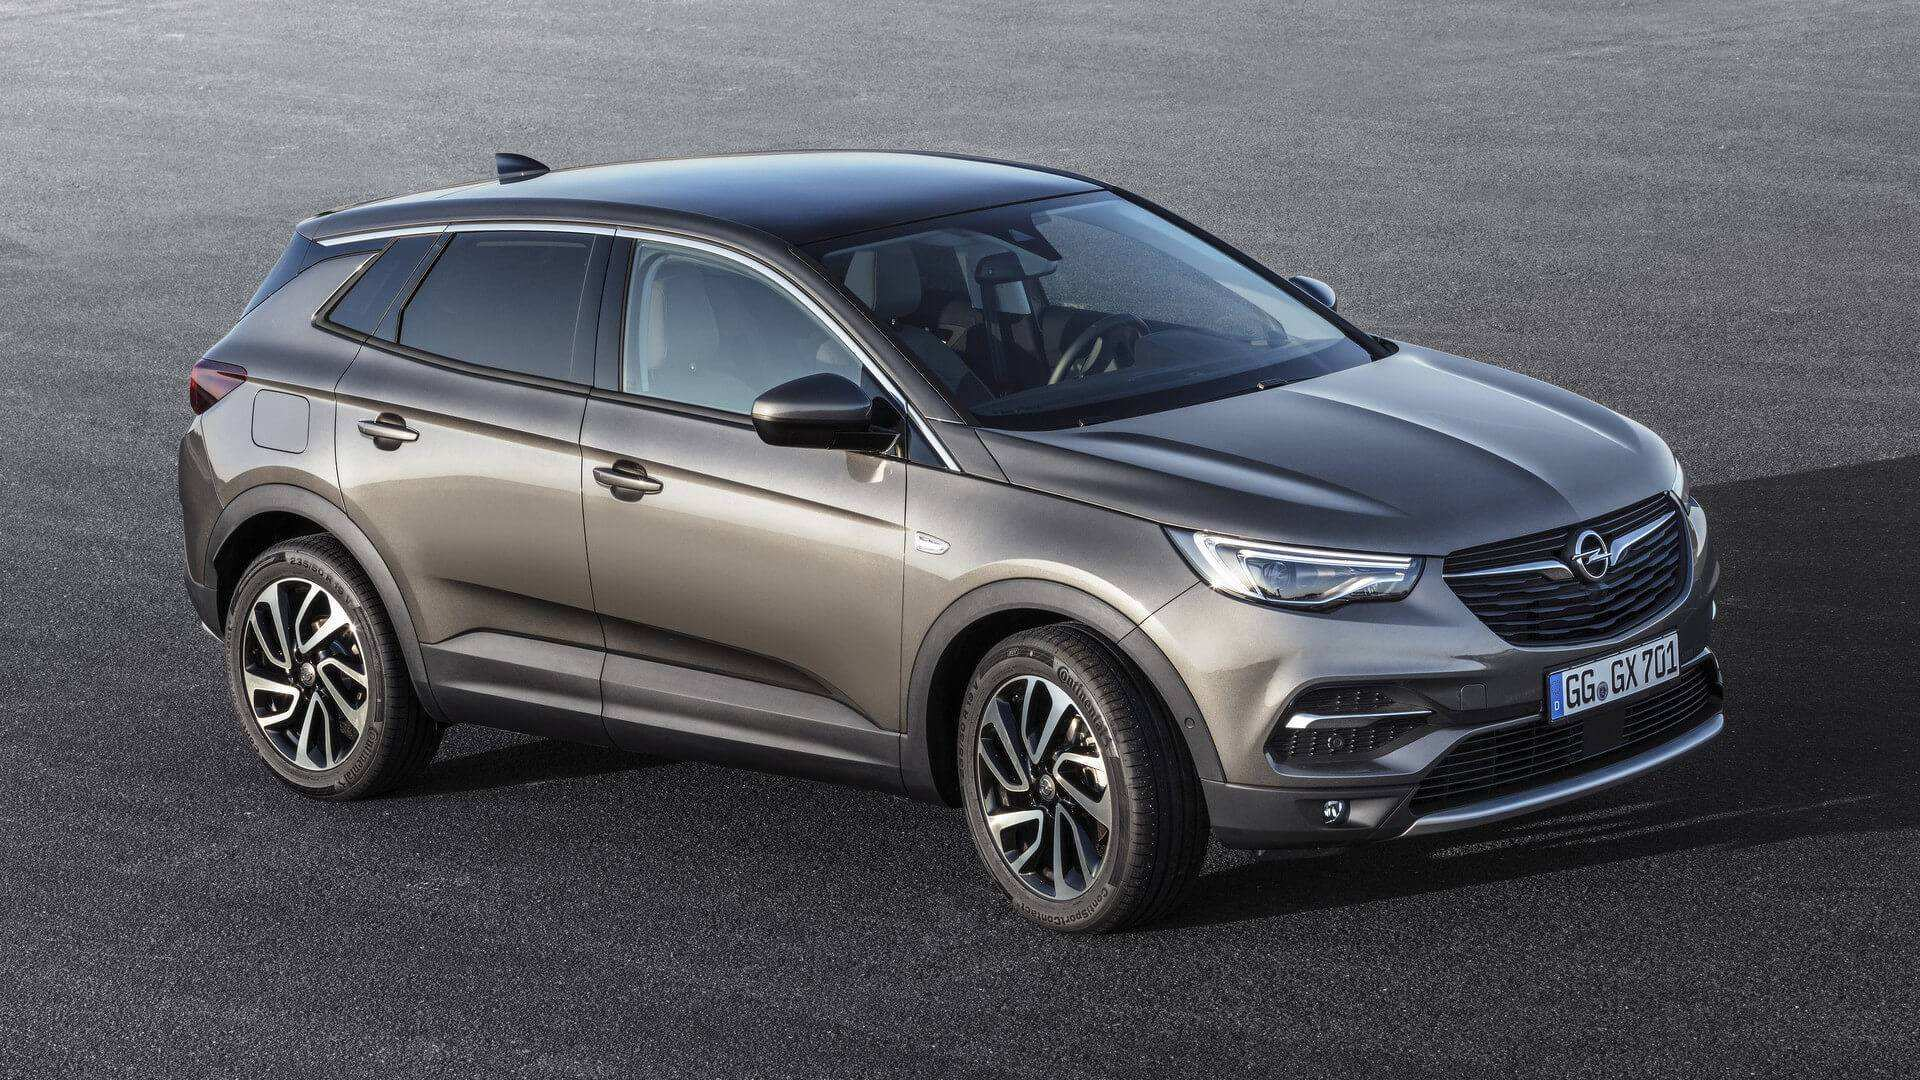 46 The Best Opel Monza X 2020 New Concept